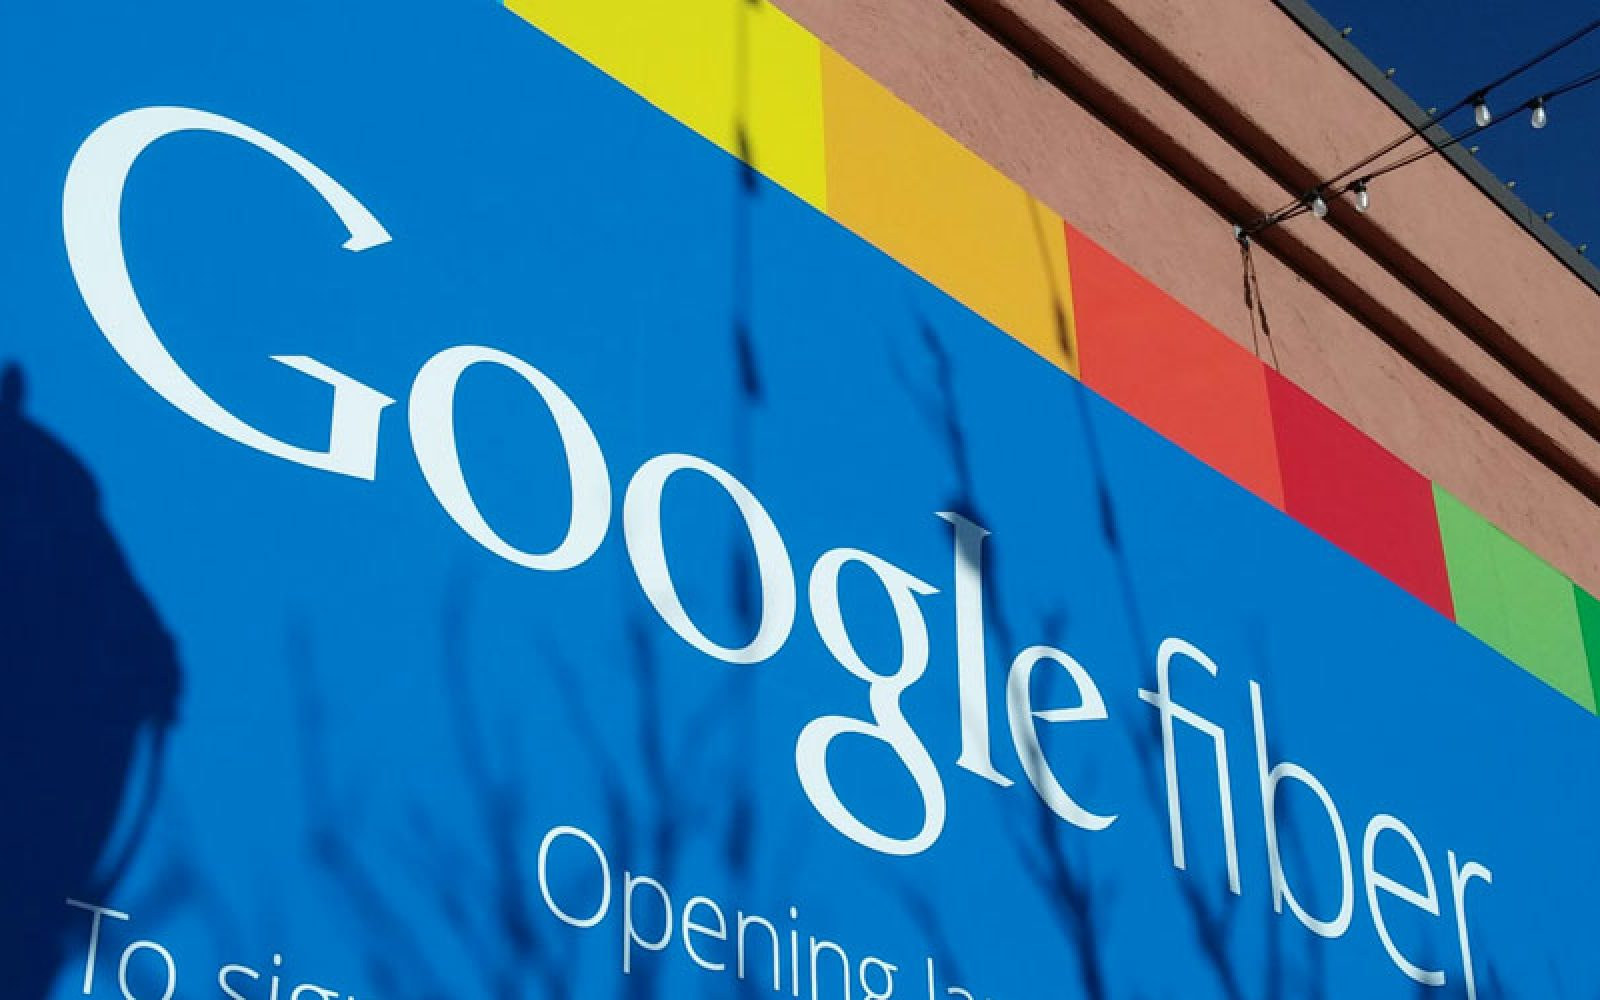 Google Fiber drops its free basic tier in Kansas City, replaces with $50/m 100Mbps plan